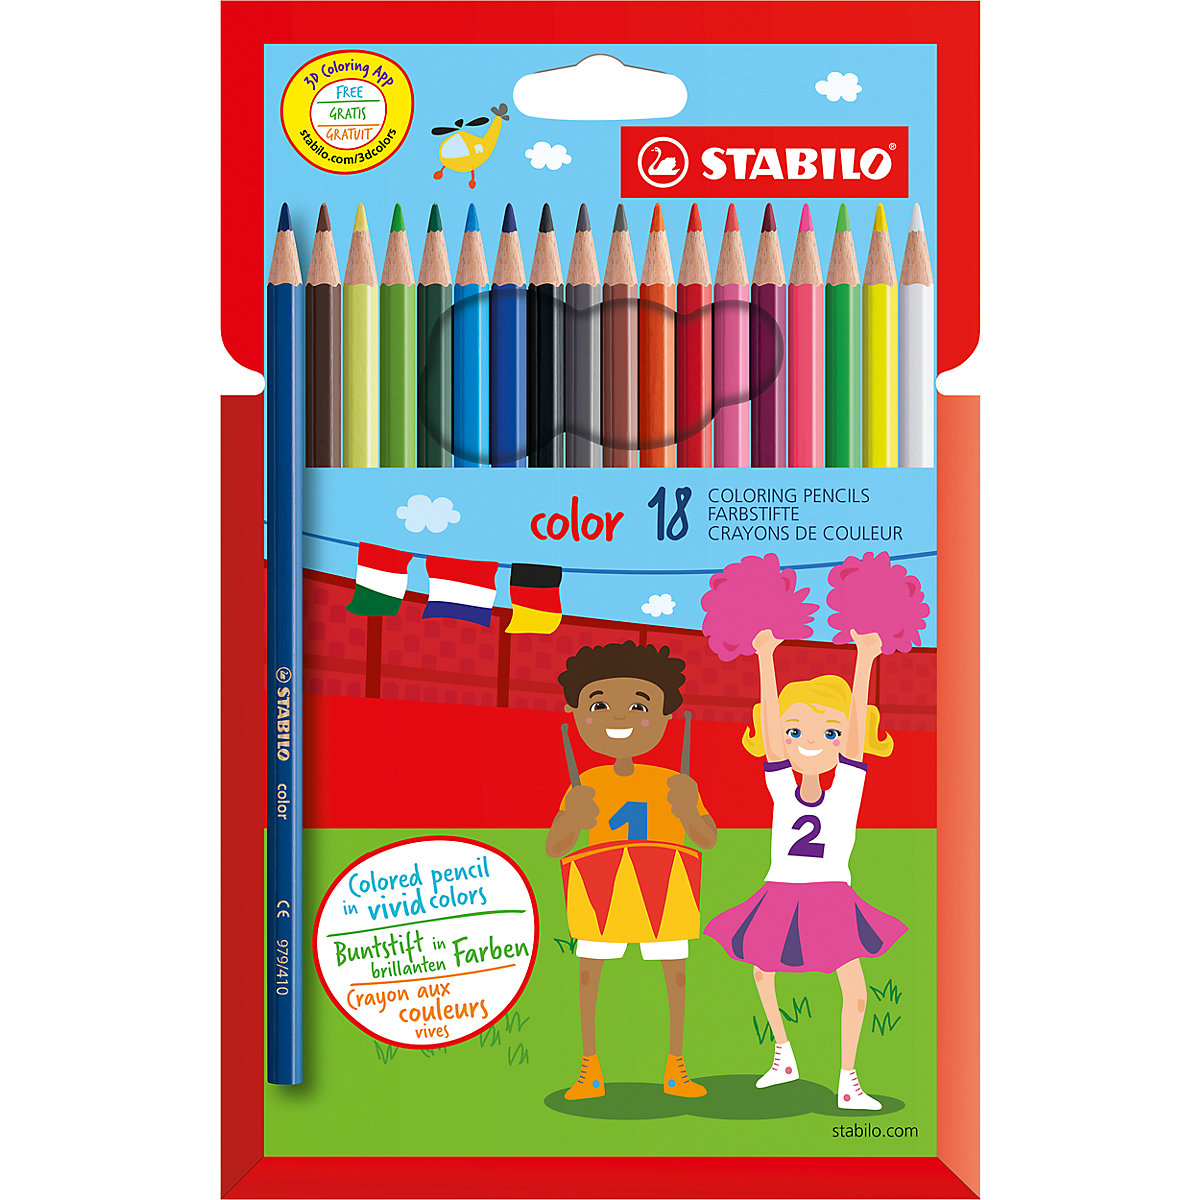 STABILO Wooden Colored Pencils 2606803 colored pencil for boys and girls children sets MTpromo